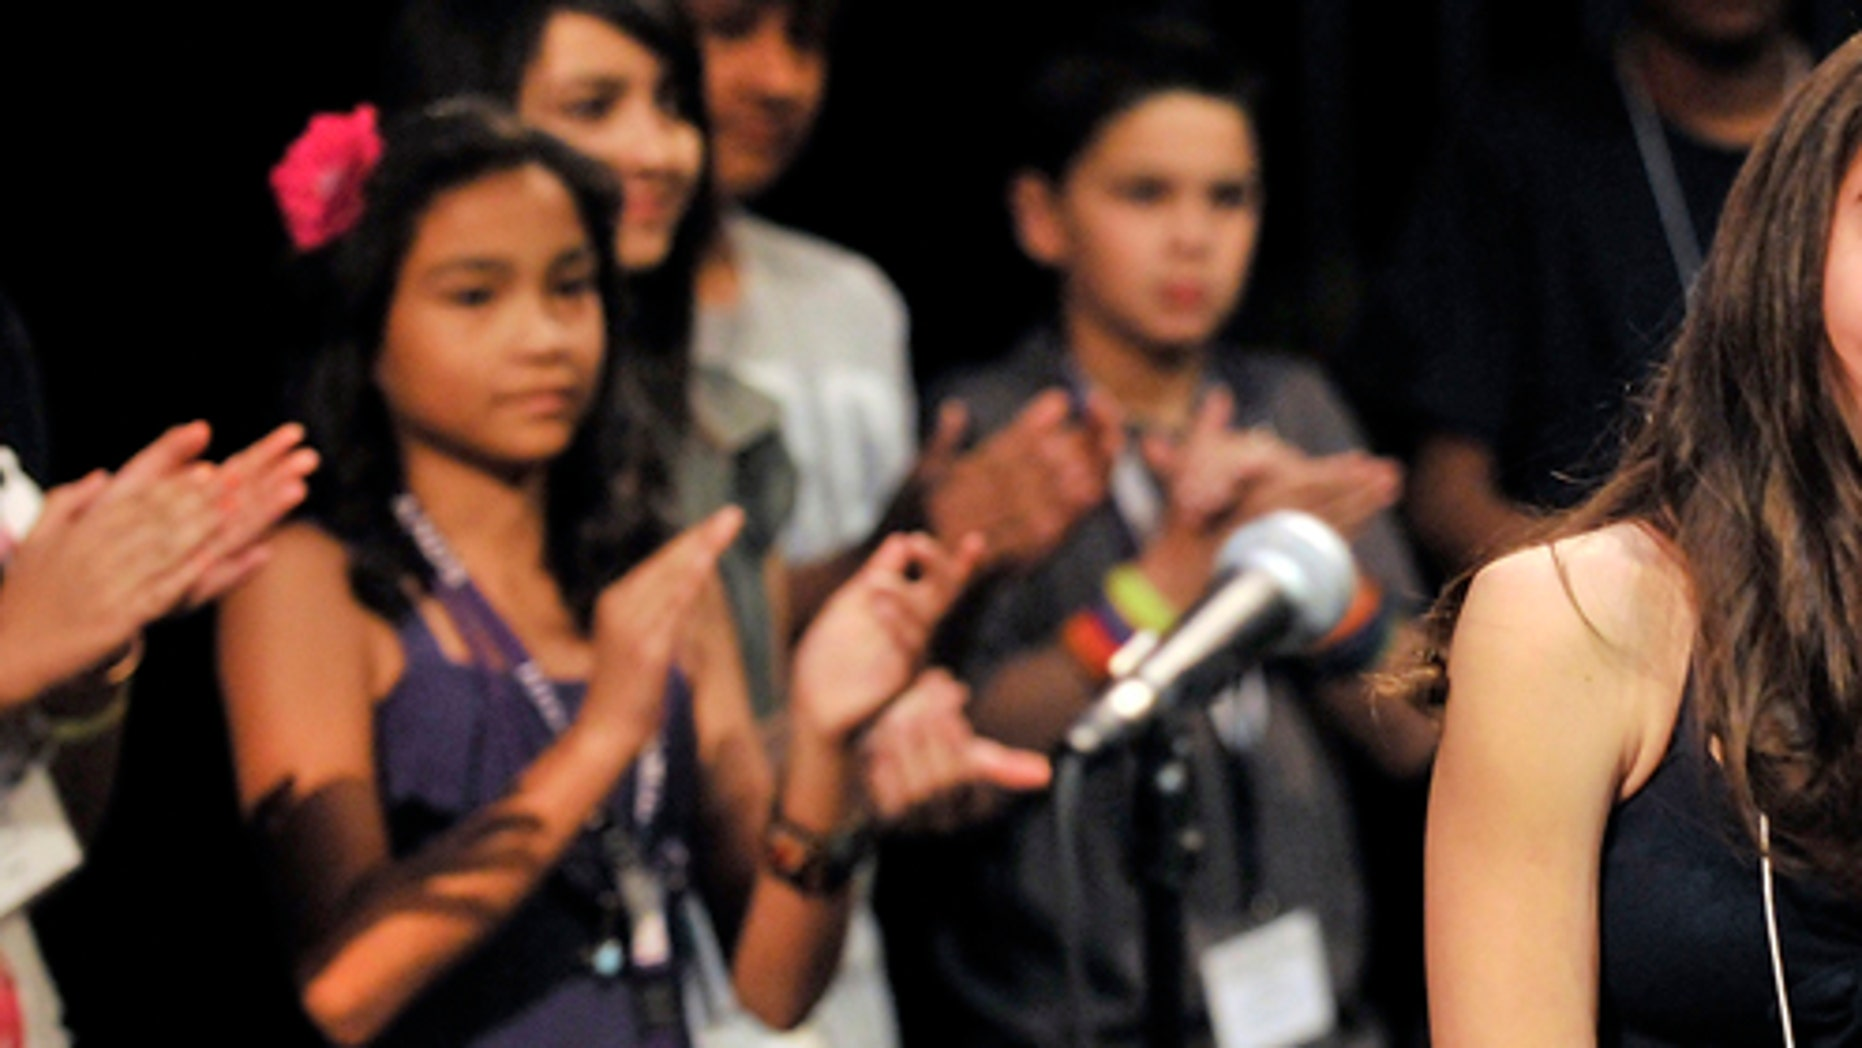 Other contestants applaud Evelyn Juarez, right, a seventh grader from Santa Cruz, New Mexico, who won the First Annual SANTILLANA National Spanish Spelling Bee with the word bizantinismo at the National Hispanic Cultural Center in Albuquerque, NM on Saturday, July 9, 2011.  (AP Photo/Albuquerque Journal, Greg Sorber)